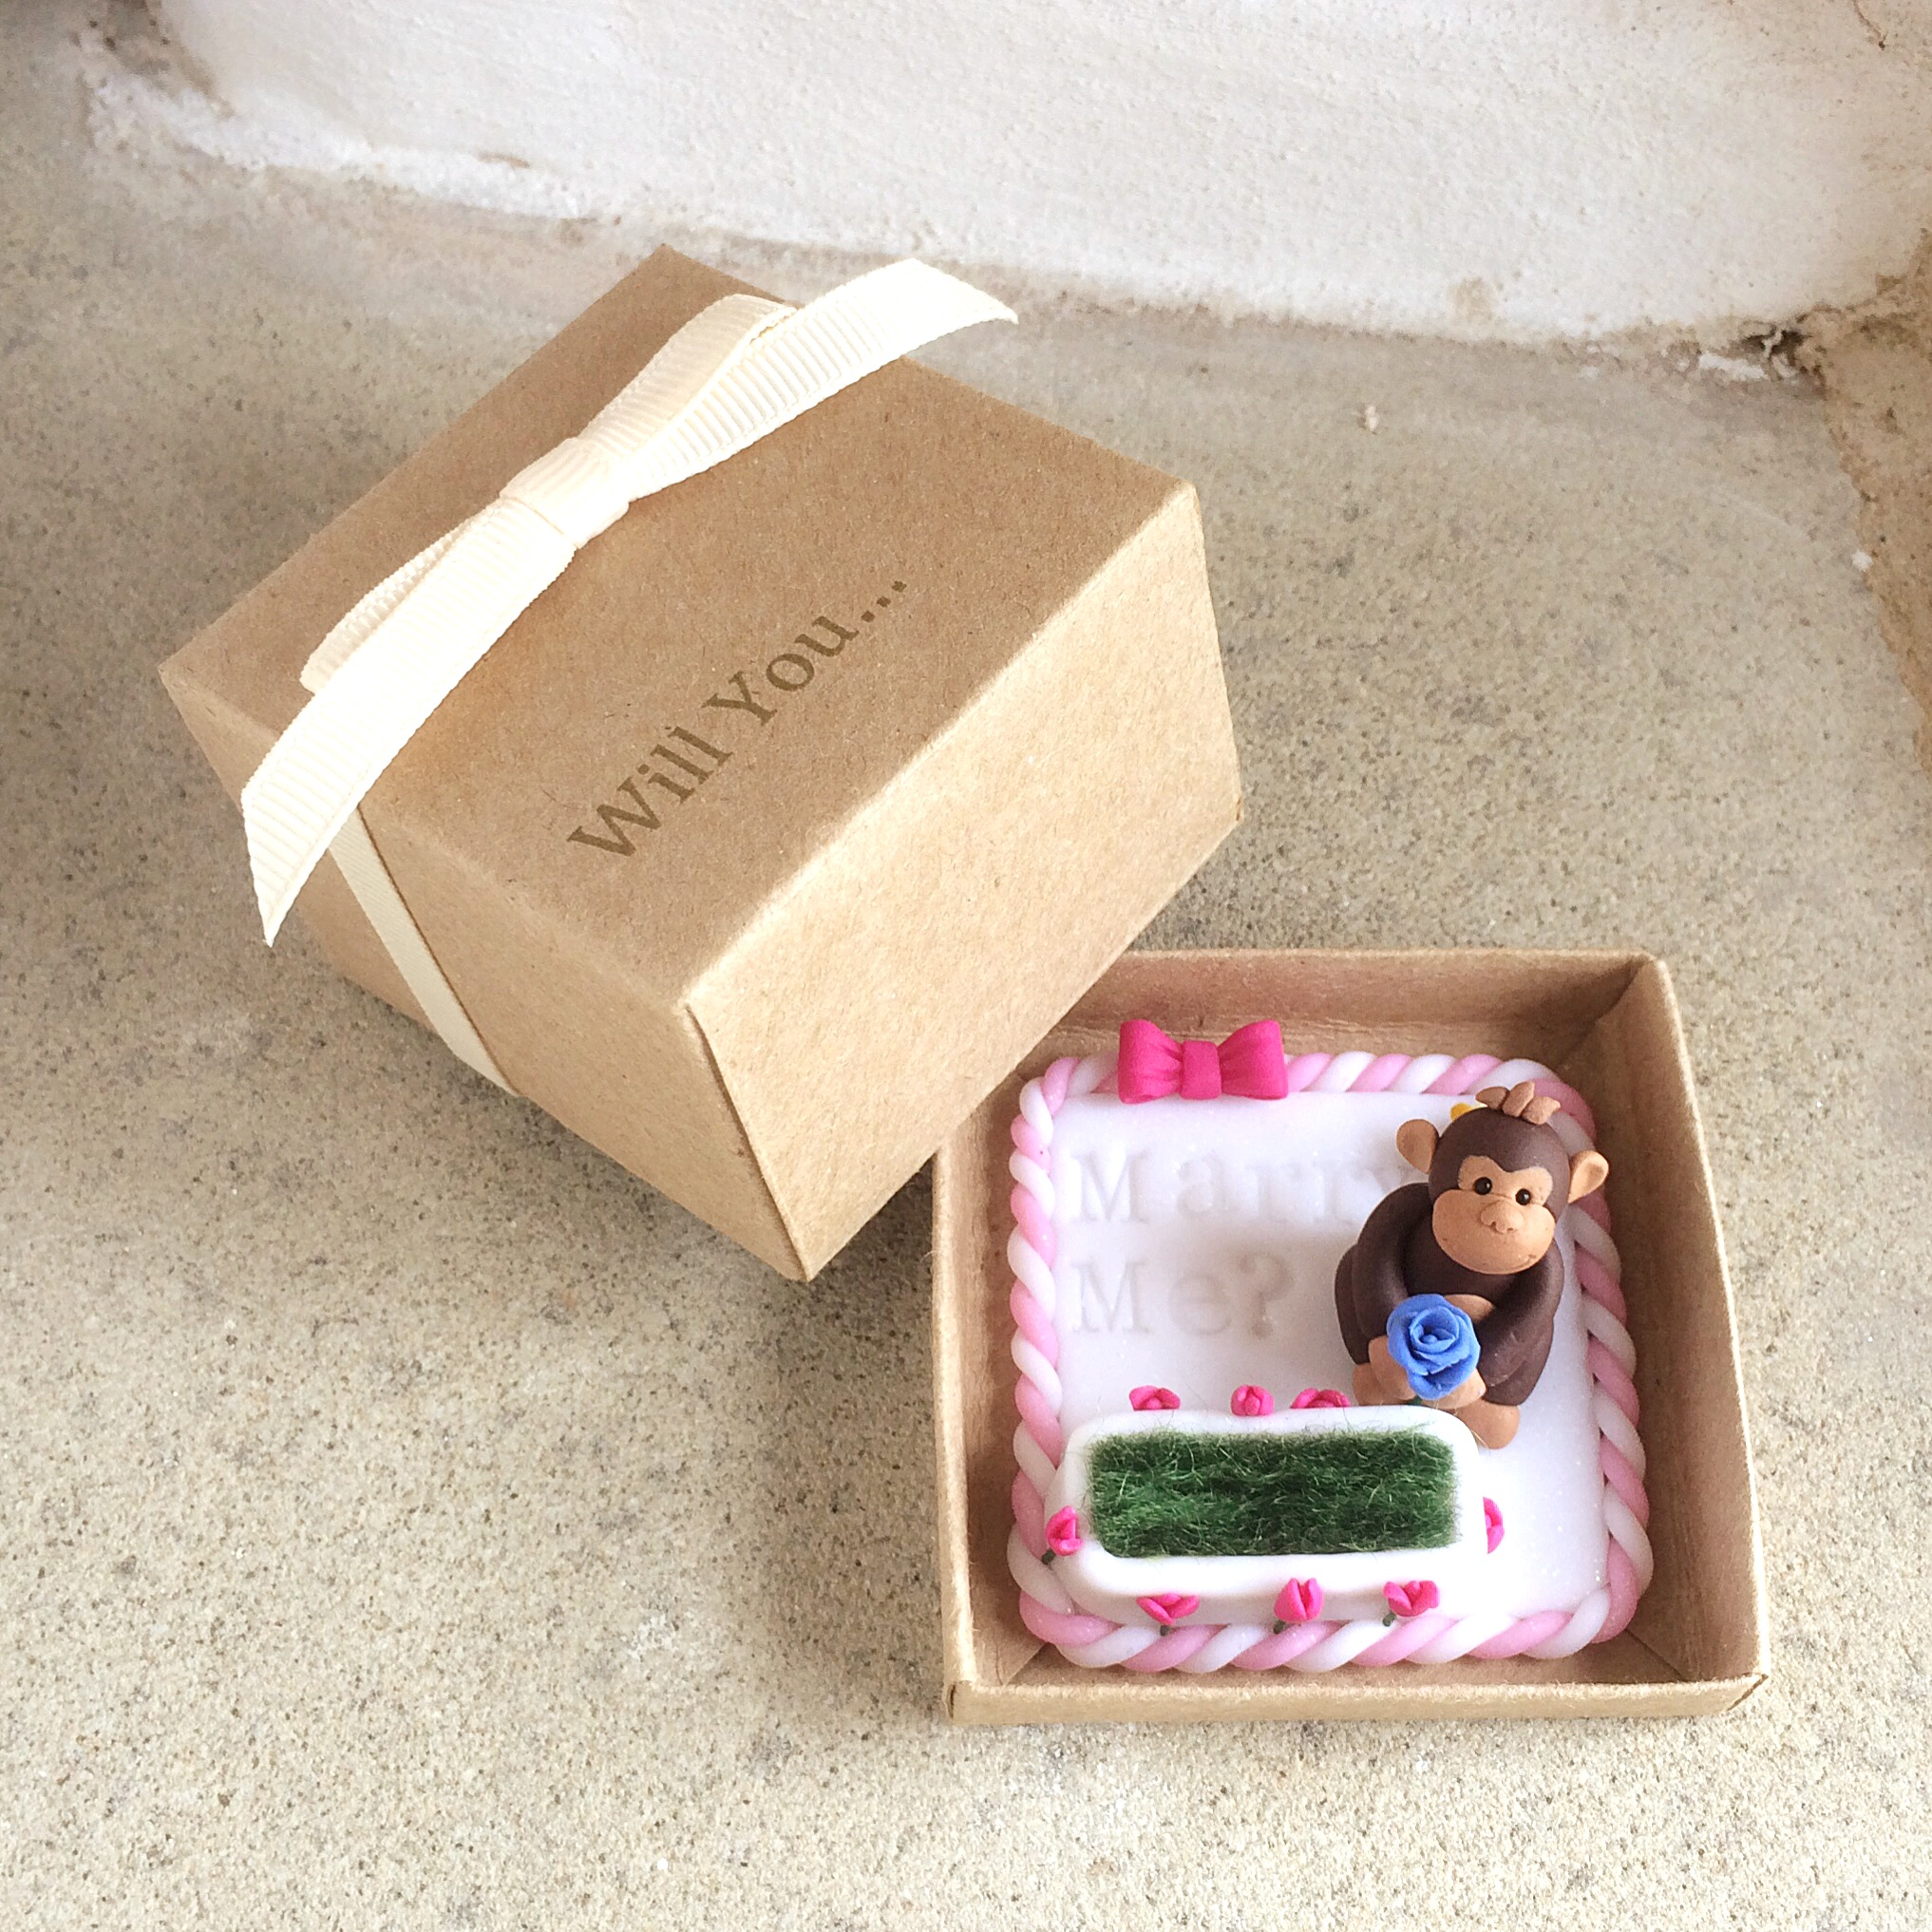 Monkey engagement ring box